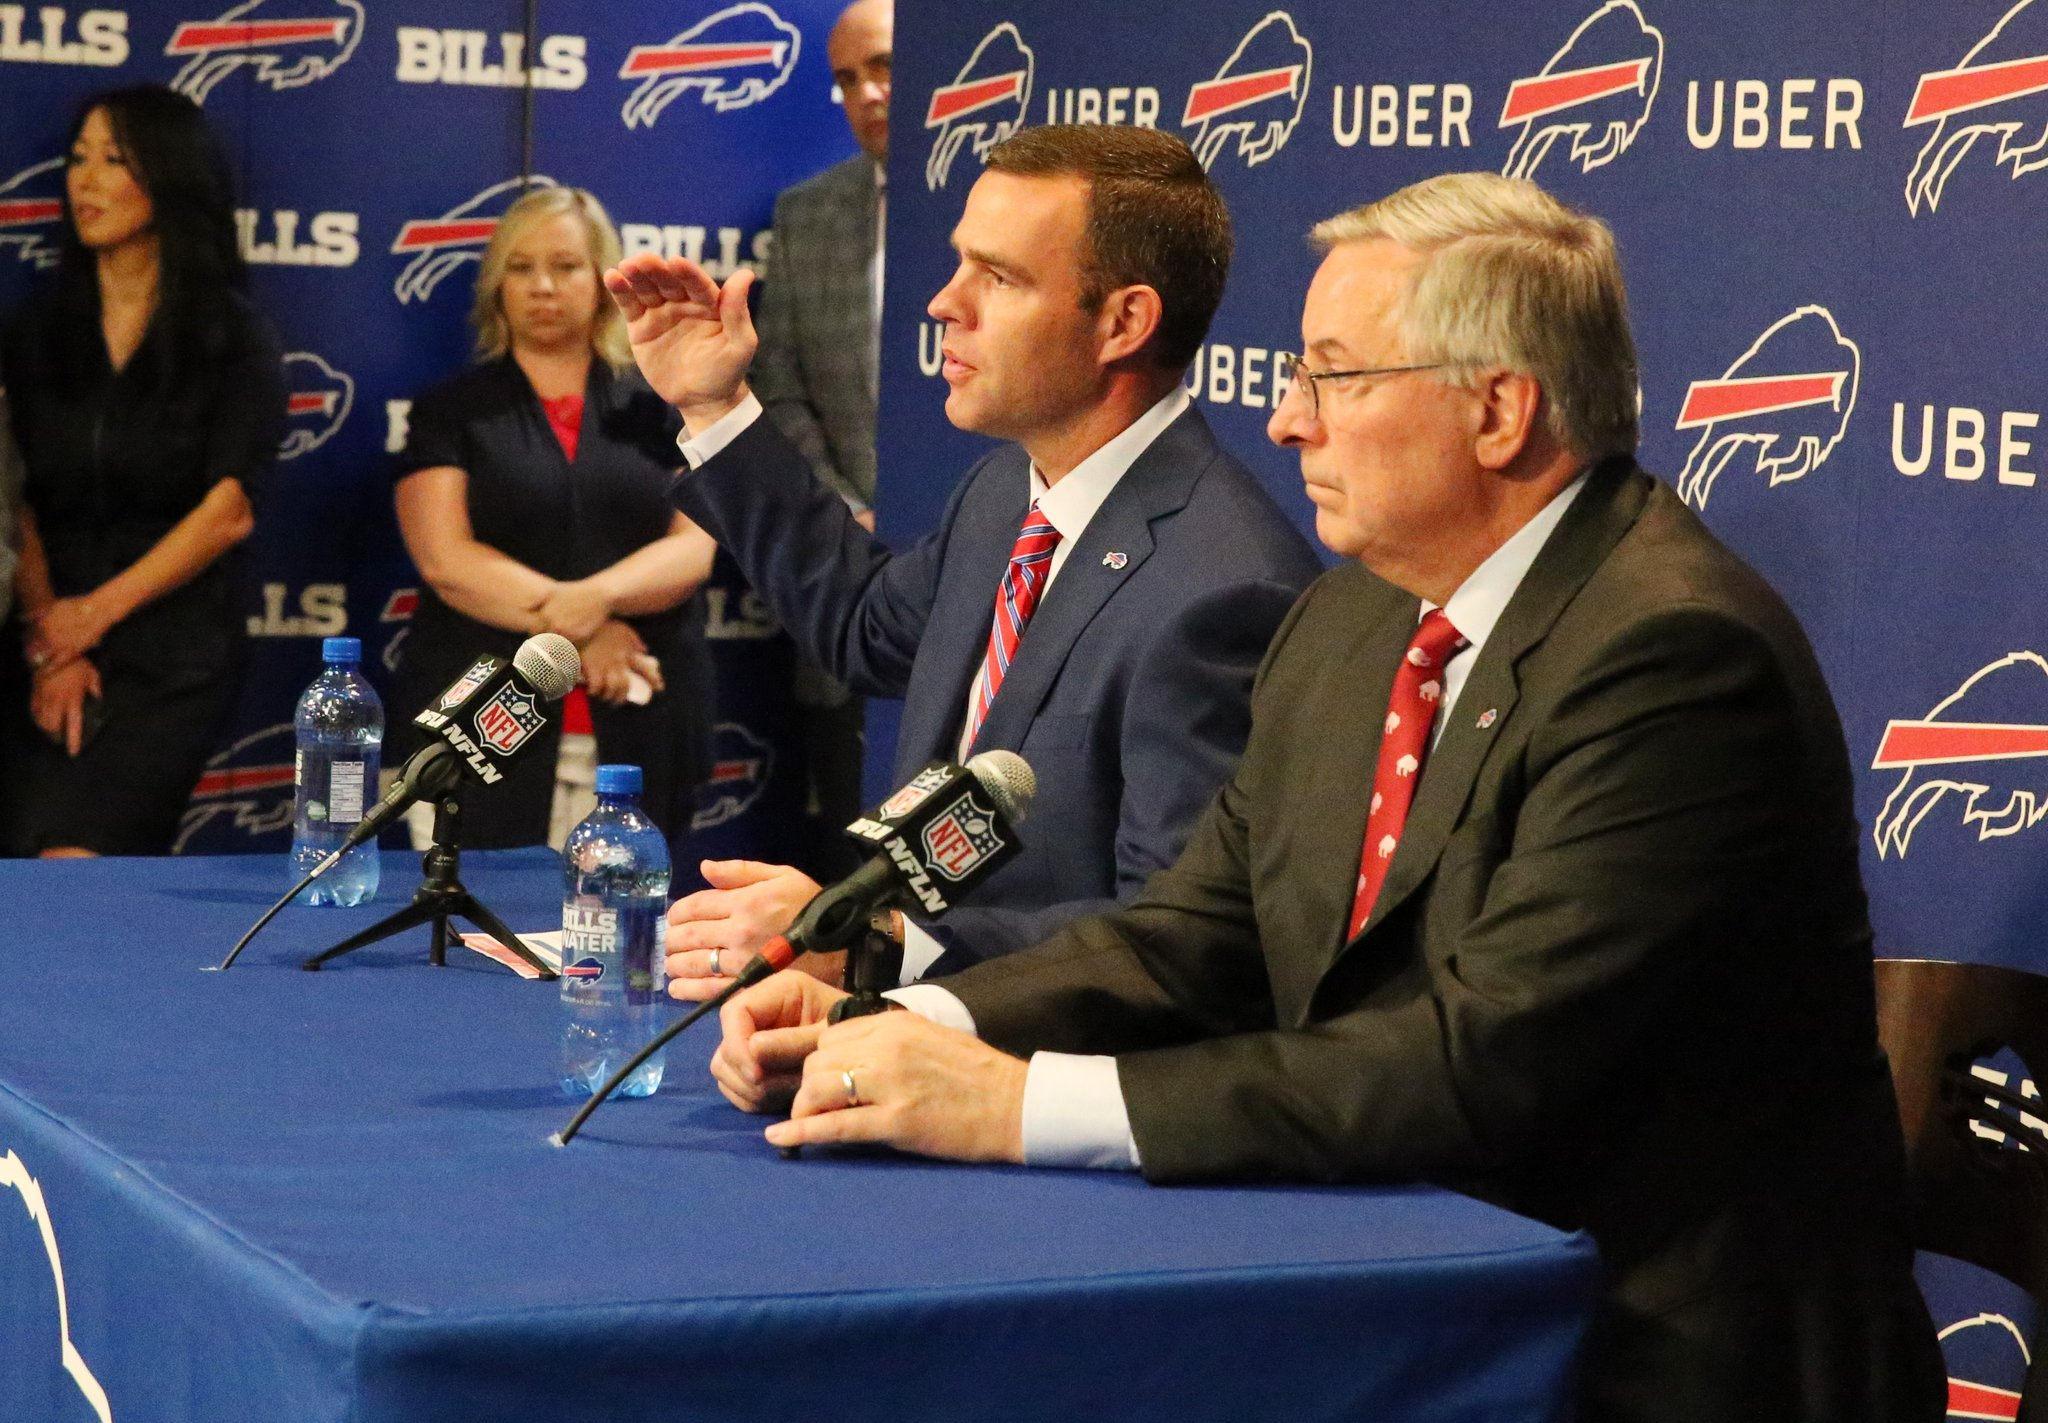 New Bills General Manager Brandon Beane, seated next to owner Terry Pegula, speaks Friday at his introductory news conference. (Photo by James P. McCoy)